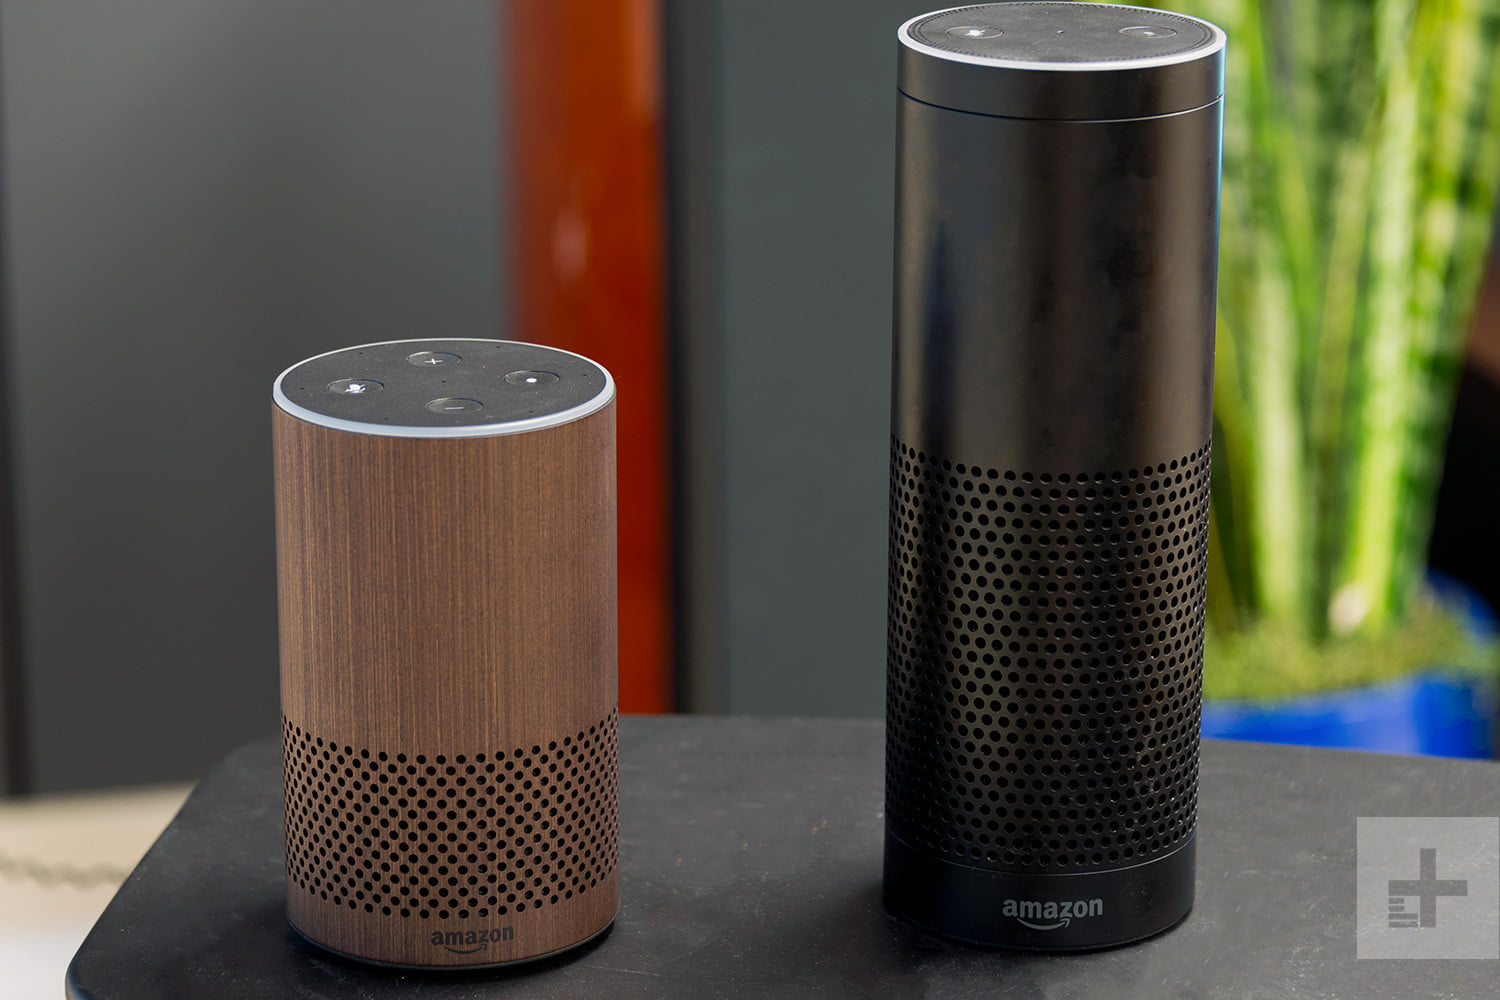 Amazon's surprise event could include a talking microwave and Echo Show 2.0